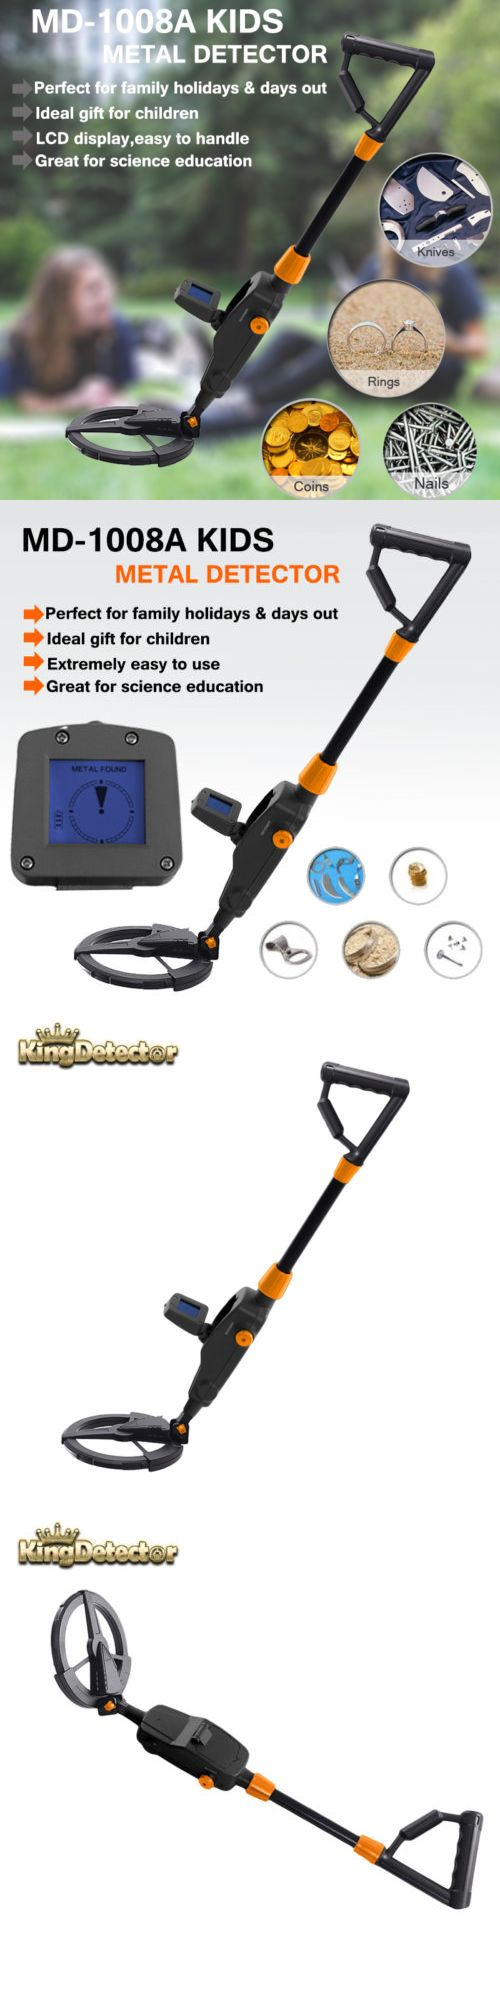 Metal Detectors: Metal Detector With Waterproof Search Coil Gold Digger Treasure Hunter For Kids BUY IT NOW ONLY: $31.99